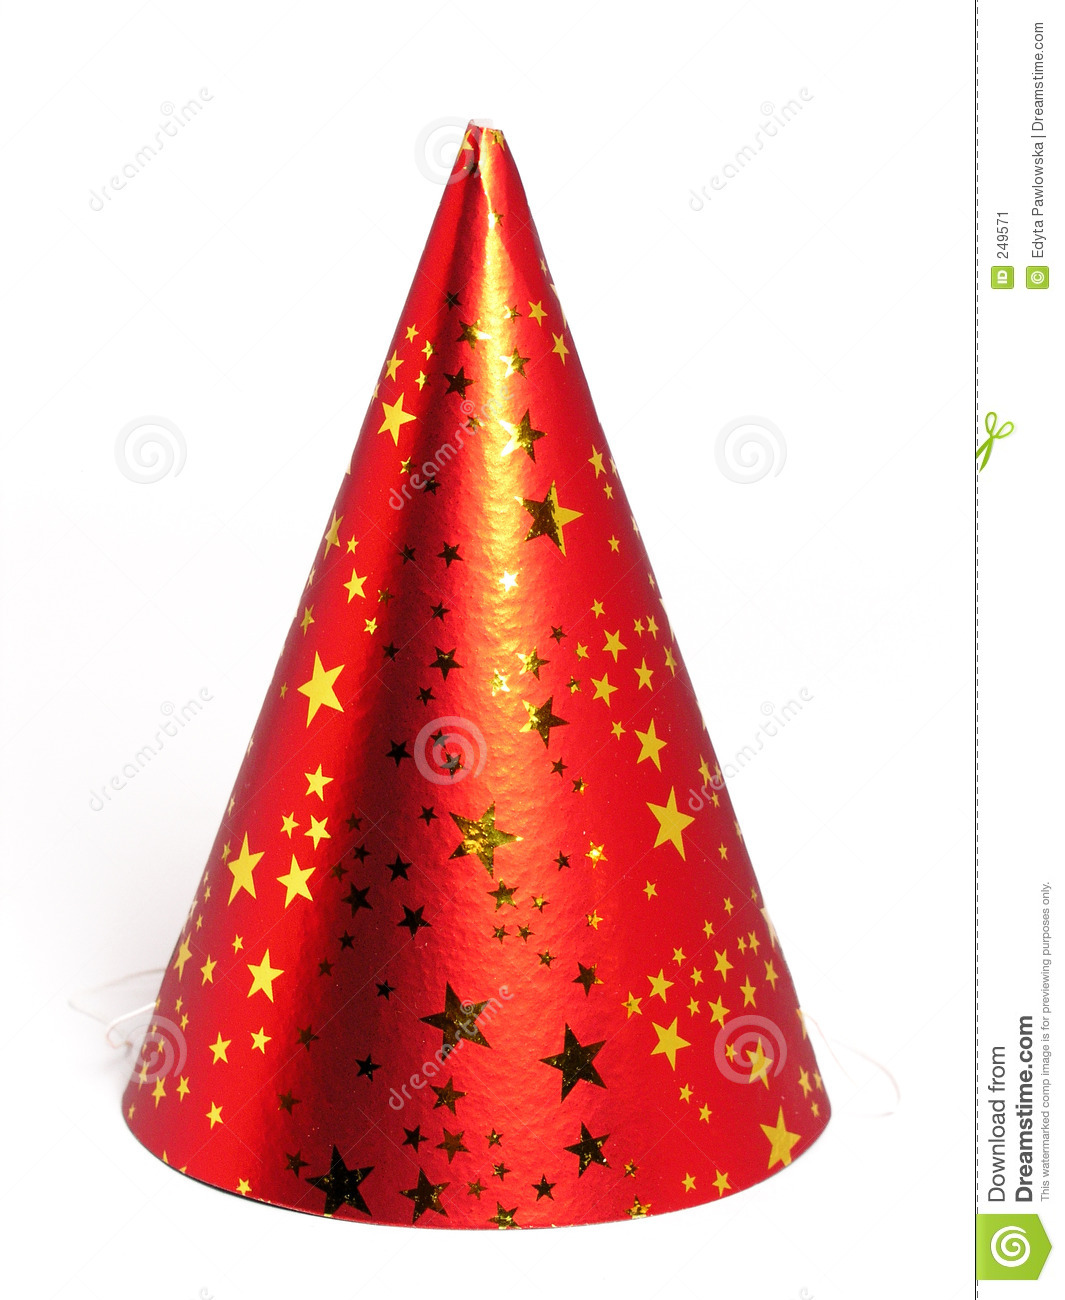 party hat stock image image of holidays birthday year 249571 rh dreamstime com Red Hat Clip Art Verses Red Hat Clip Art Verses